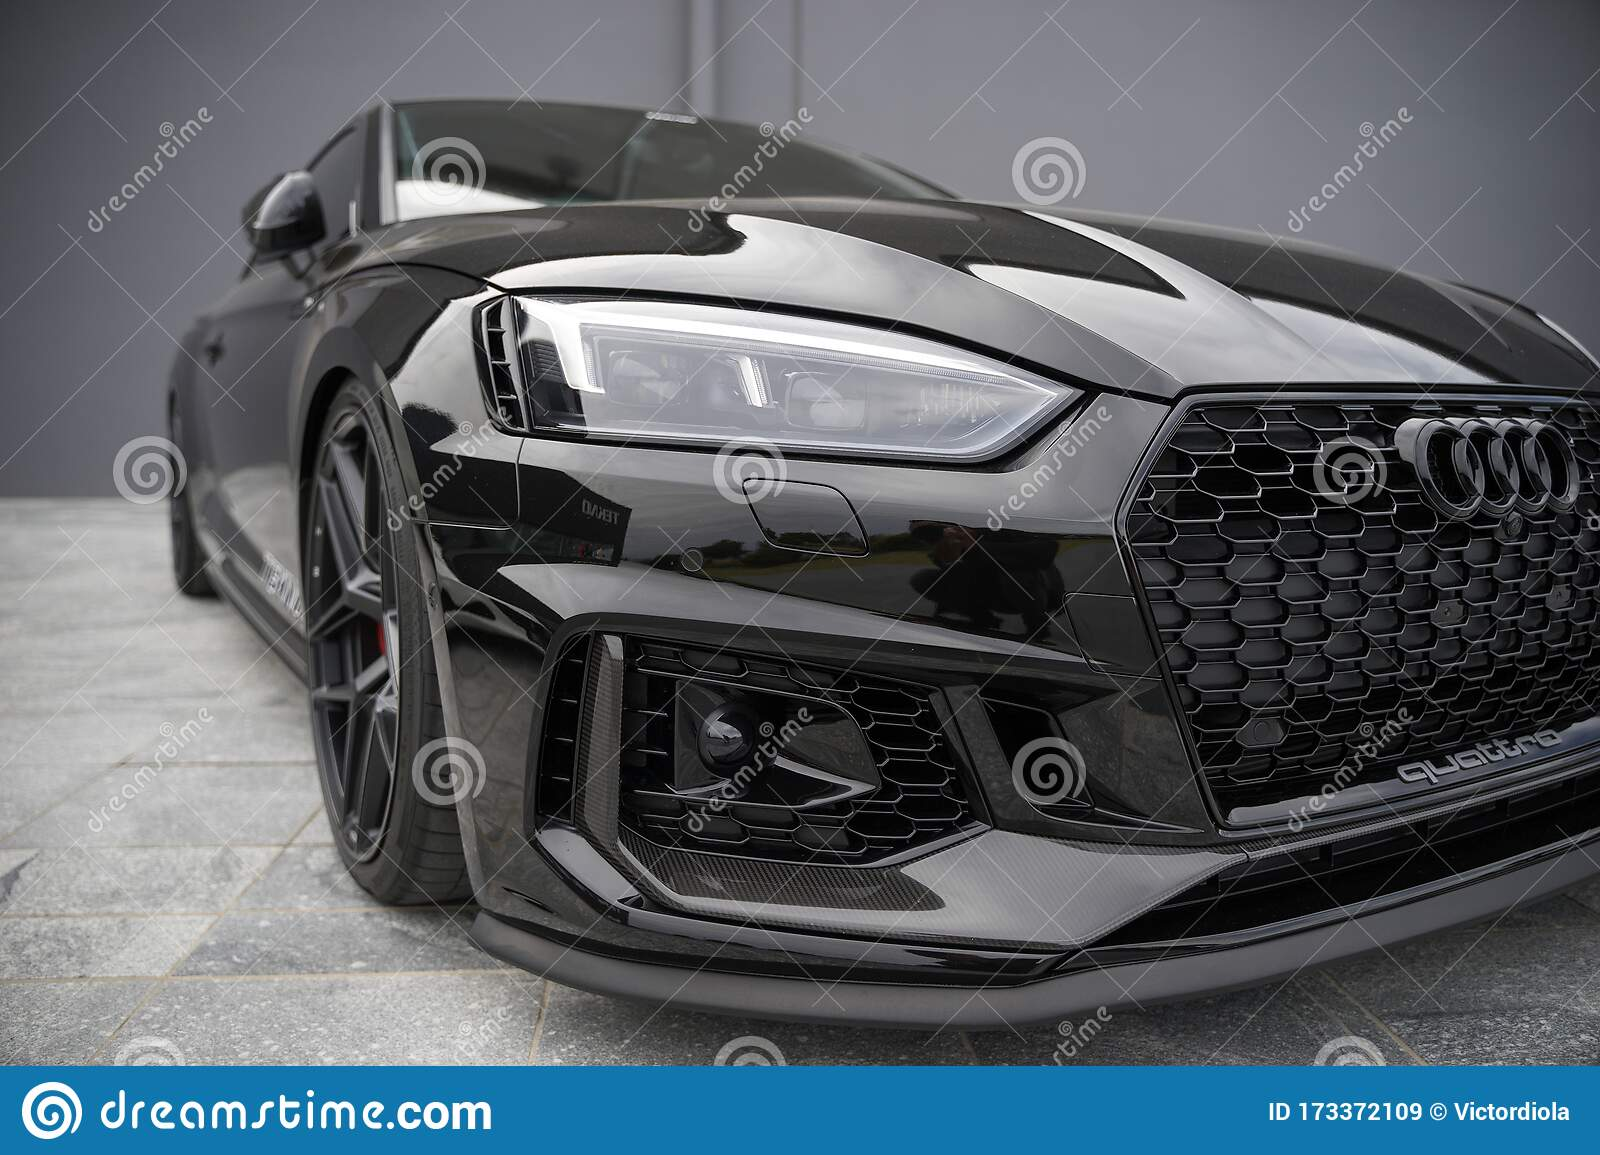 2018 Audi Rs 5 Coupe Editorial Stock Image Image Of Production 173372109